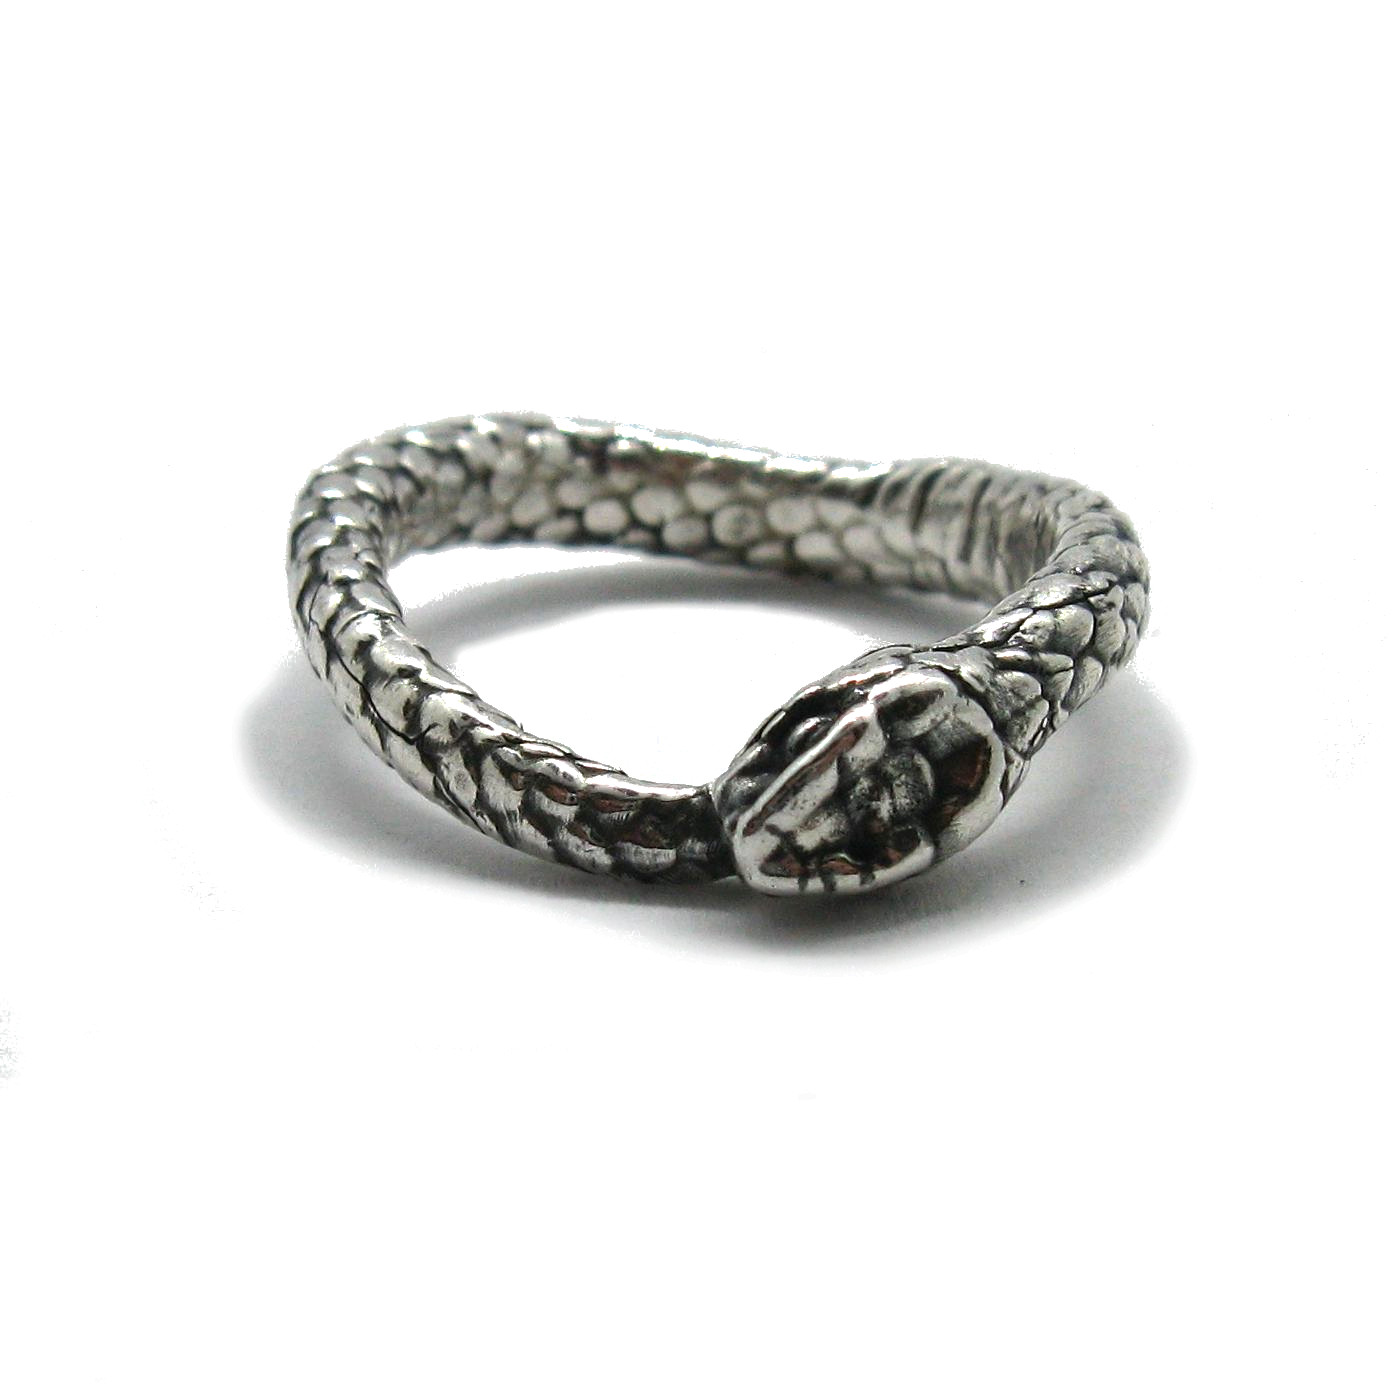 Silver ring - R001843